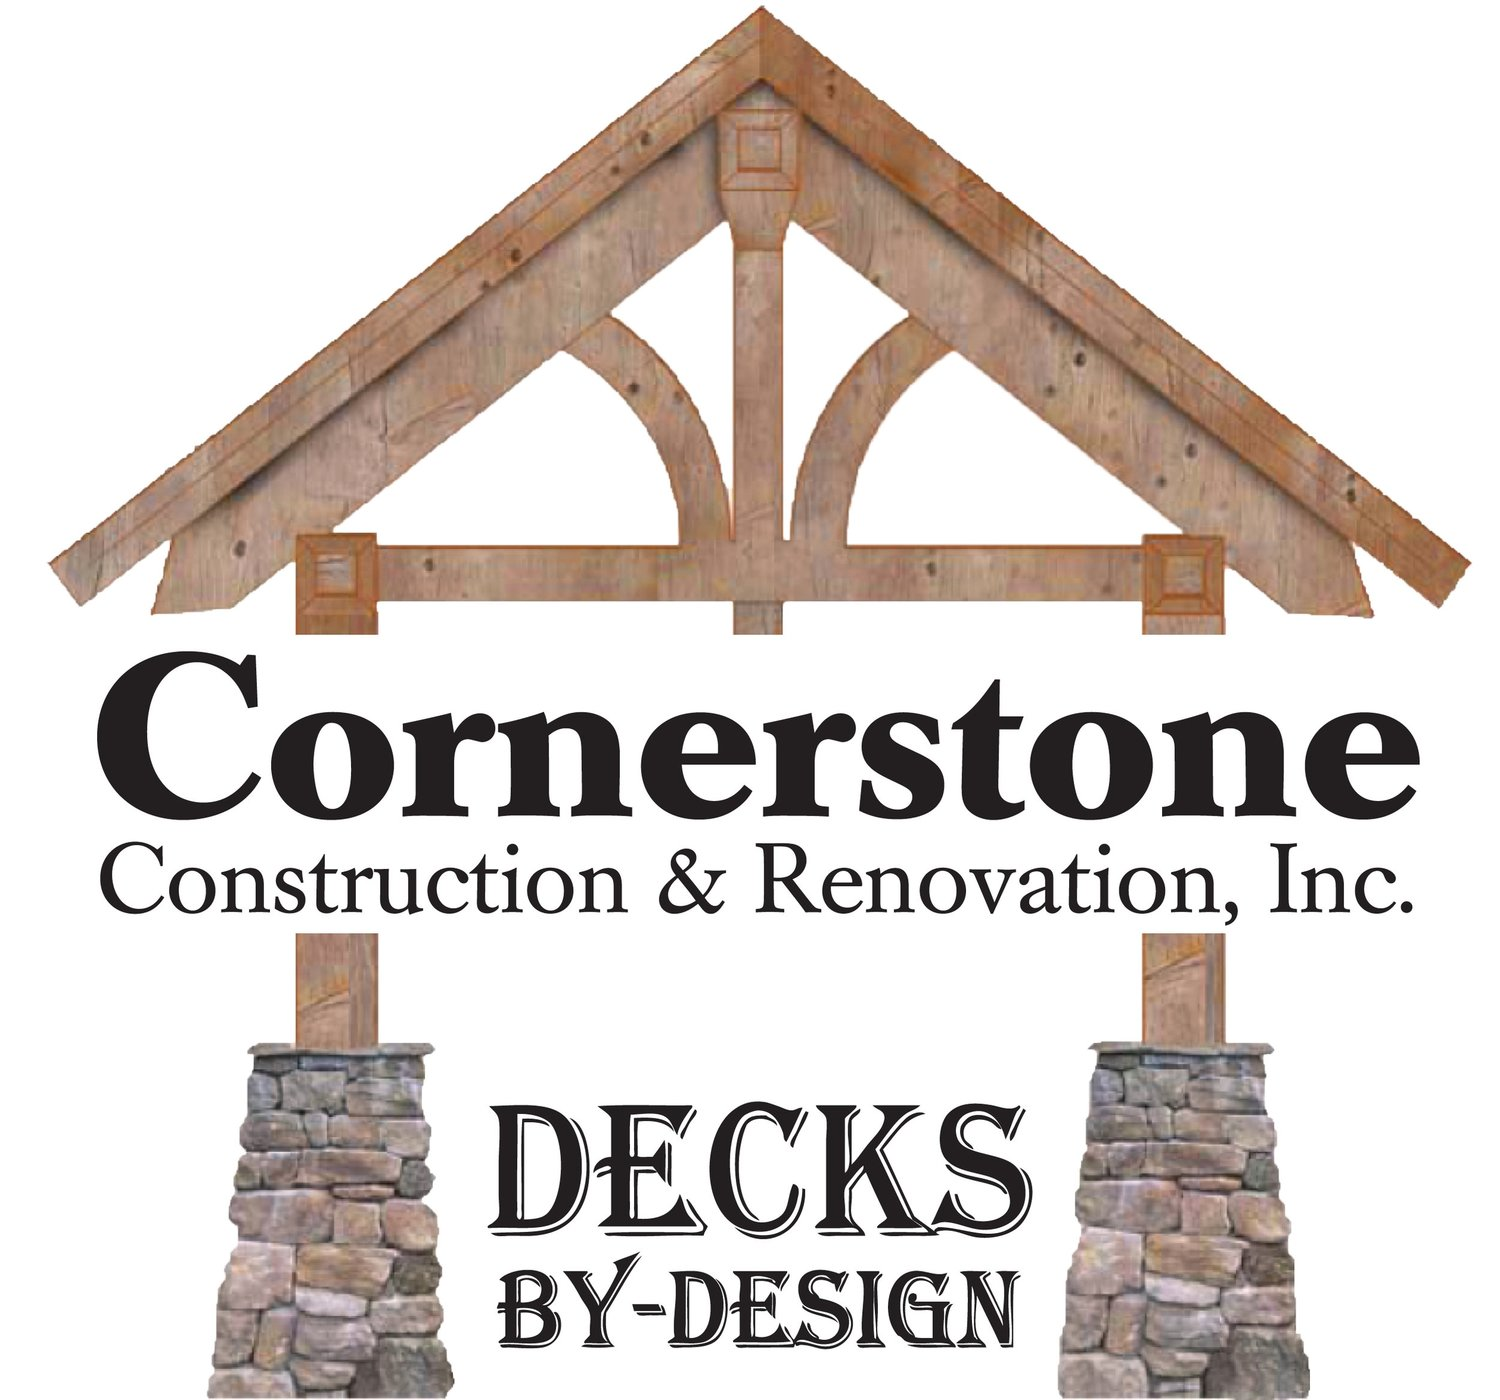 Cornerstone Construction & Renovation, INC./ Decks By Design